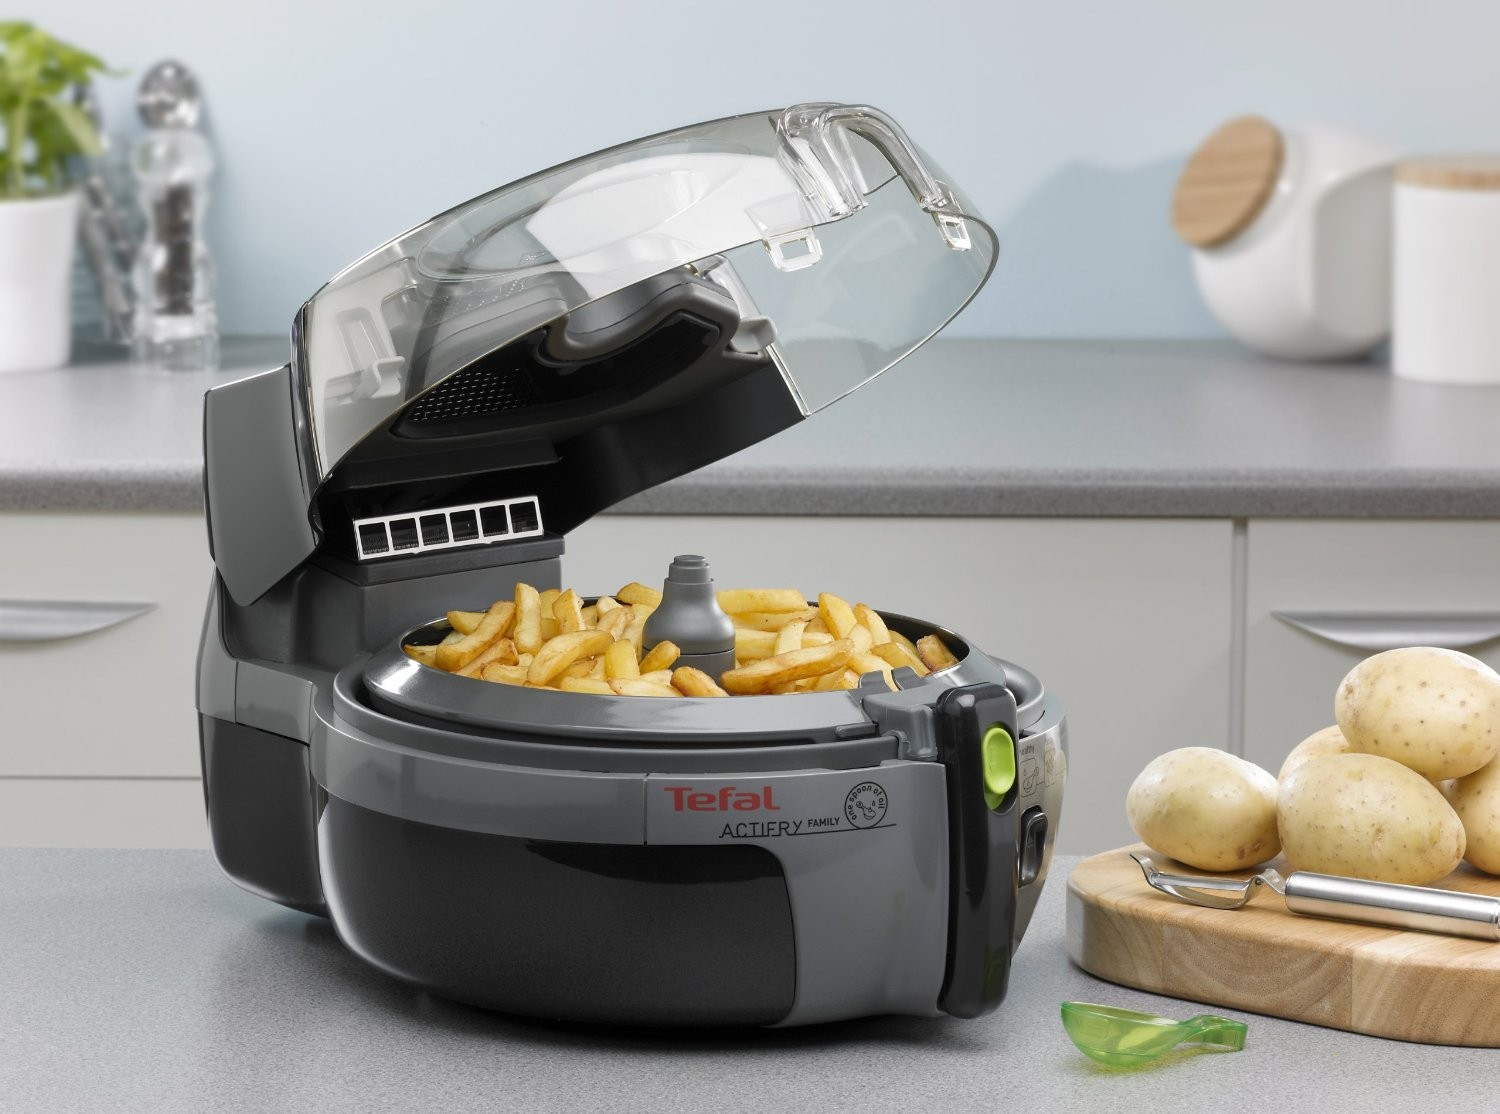 Tefal Actifry Family 1 5kg Aw950040 Low Fat Fryer Black